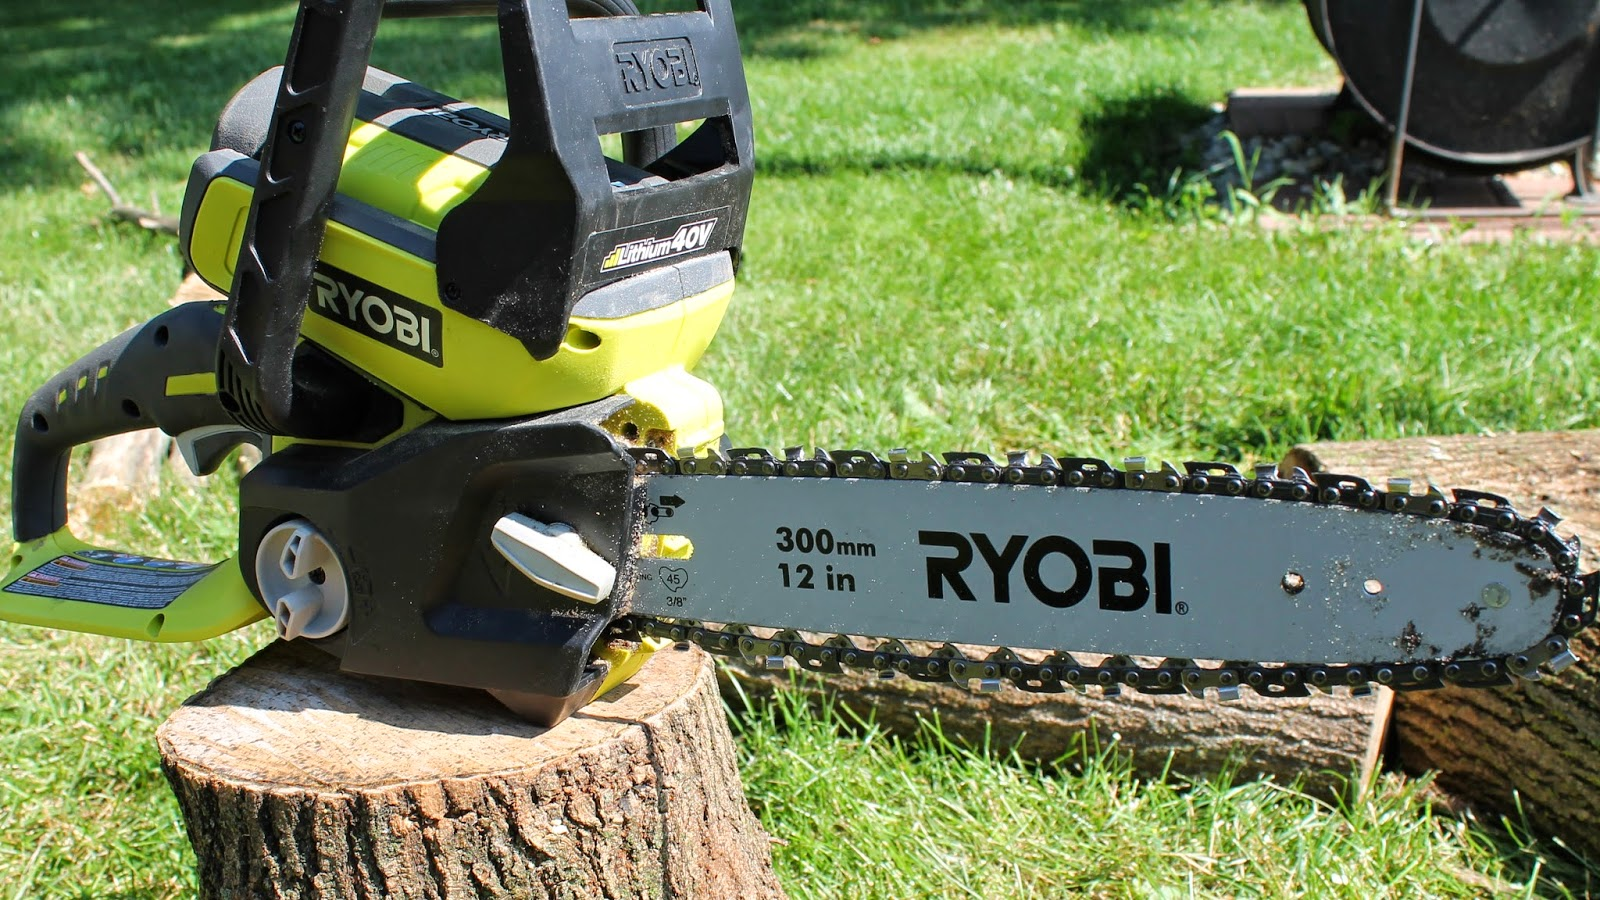 Ryobi 40 volt electric chainsaw review simple suburban living i know what youre thinking because i was thinking the same thing when i purchased this electric chain saw to keyboard keysfo